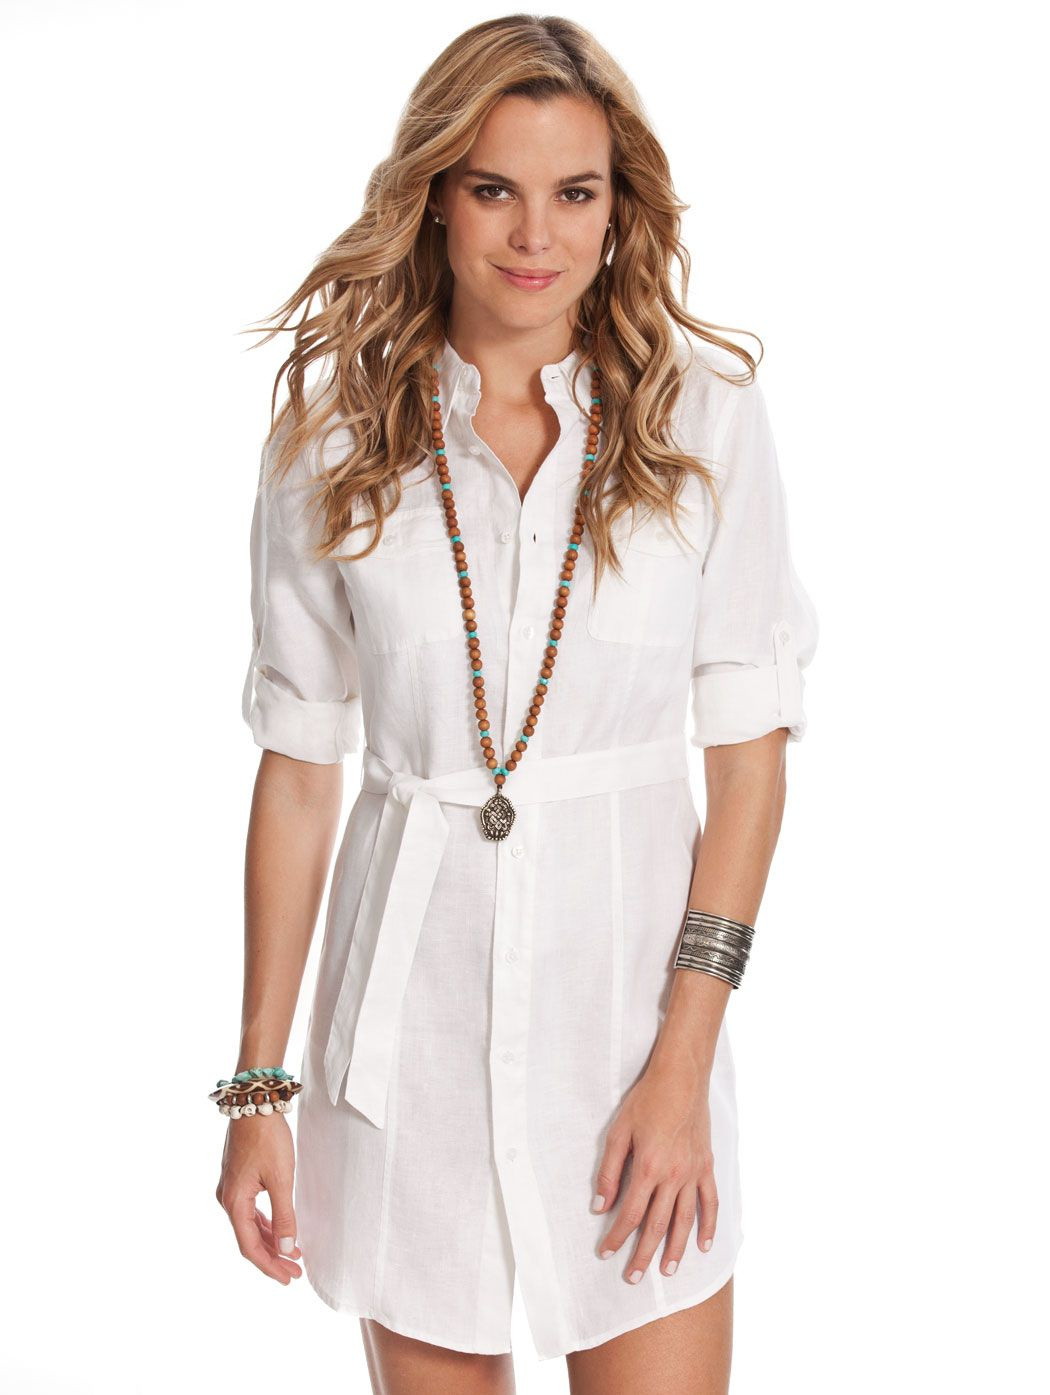 c7ffb697badc4 White Linen Shirt Dress